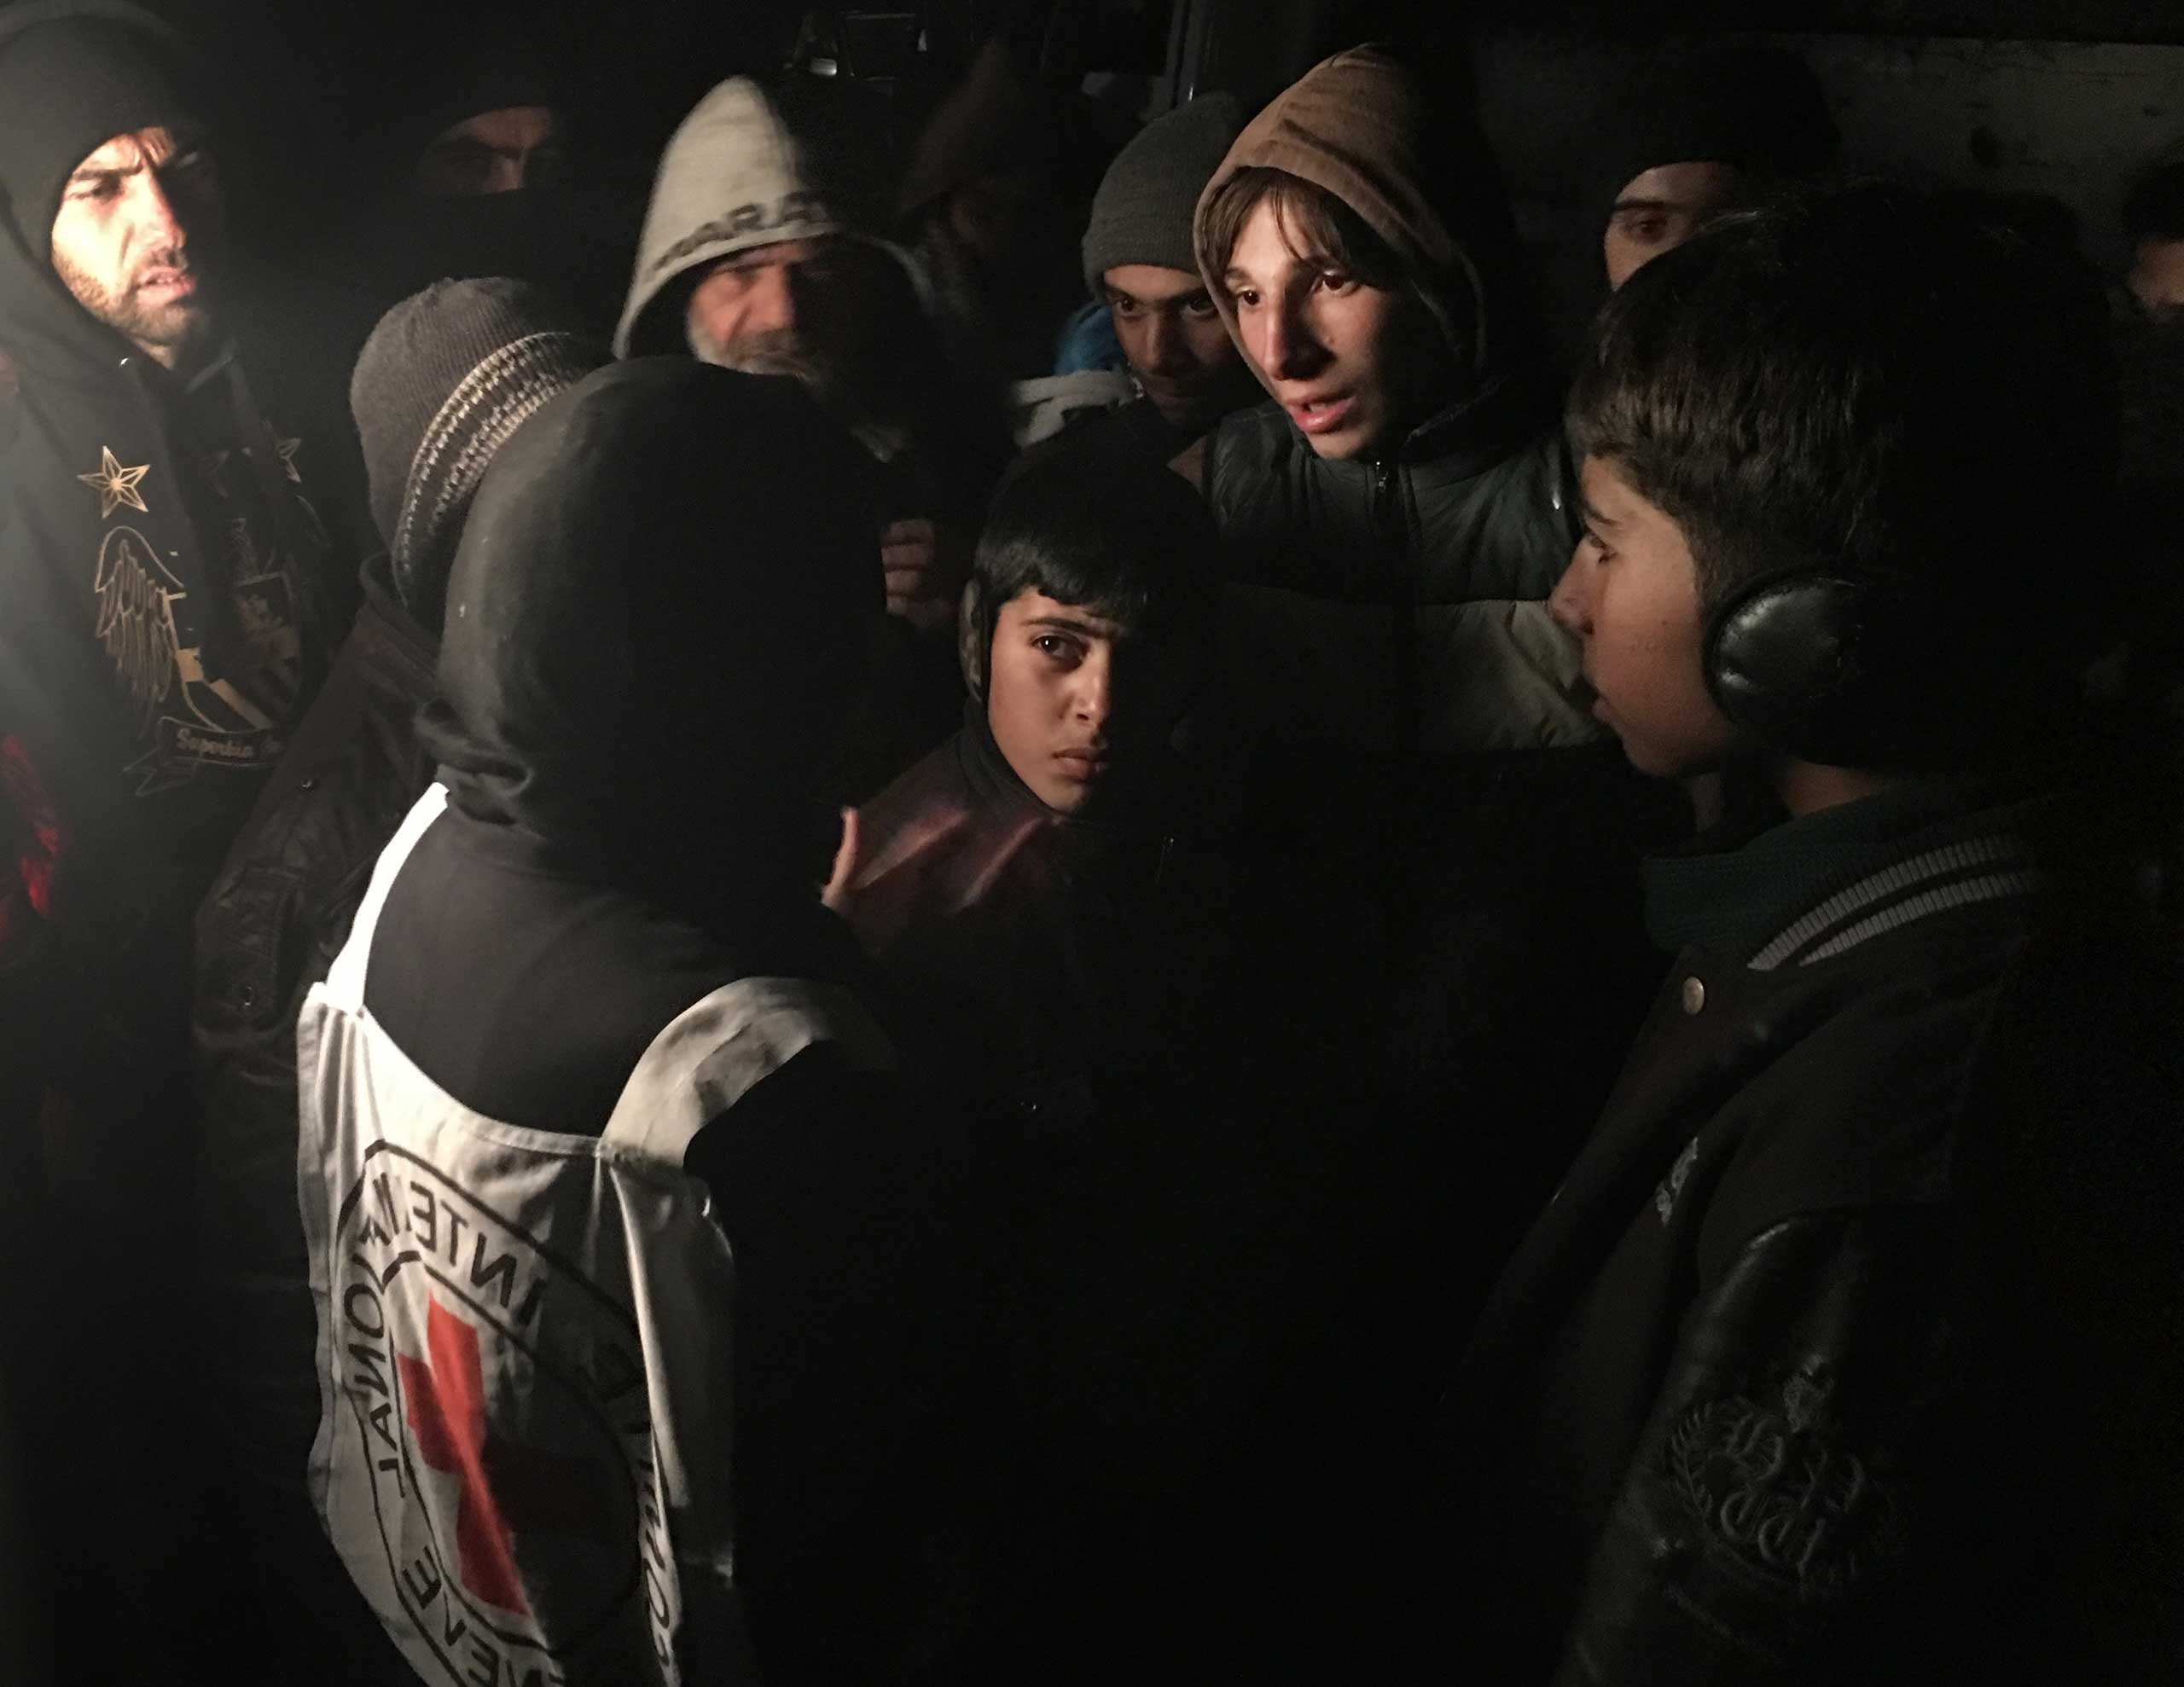 ICRC Head of Delegation Marianne Gasser speaks to residents of Madaya, a besieged town in Syria, as they gather around an aid convoy, Jan. 11, 2016. The International Committee of the Red Cross, working alongside the Syrian Arab Red Crescent and United Nations, began to deliver aid to thousands of people living in three besieged areas in Syria.